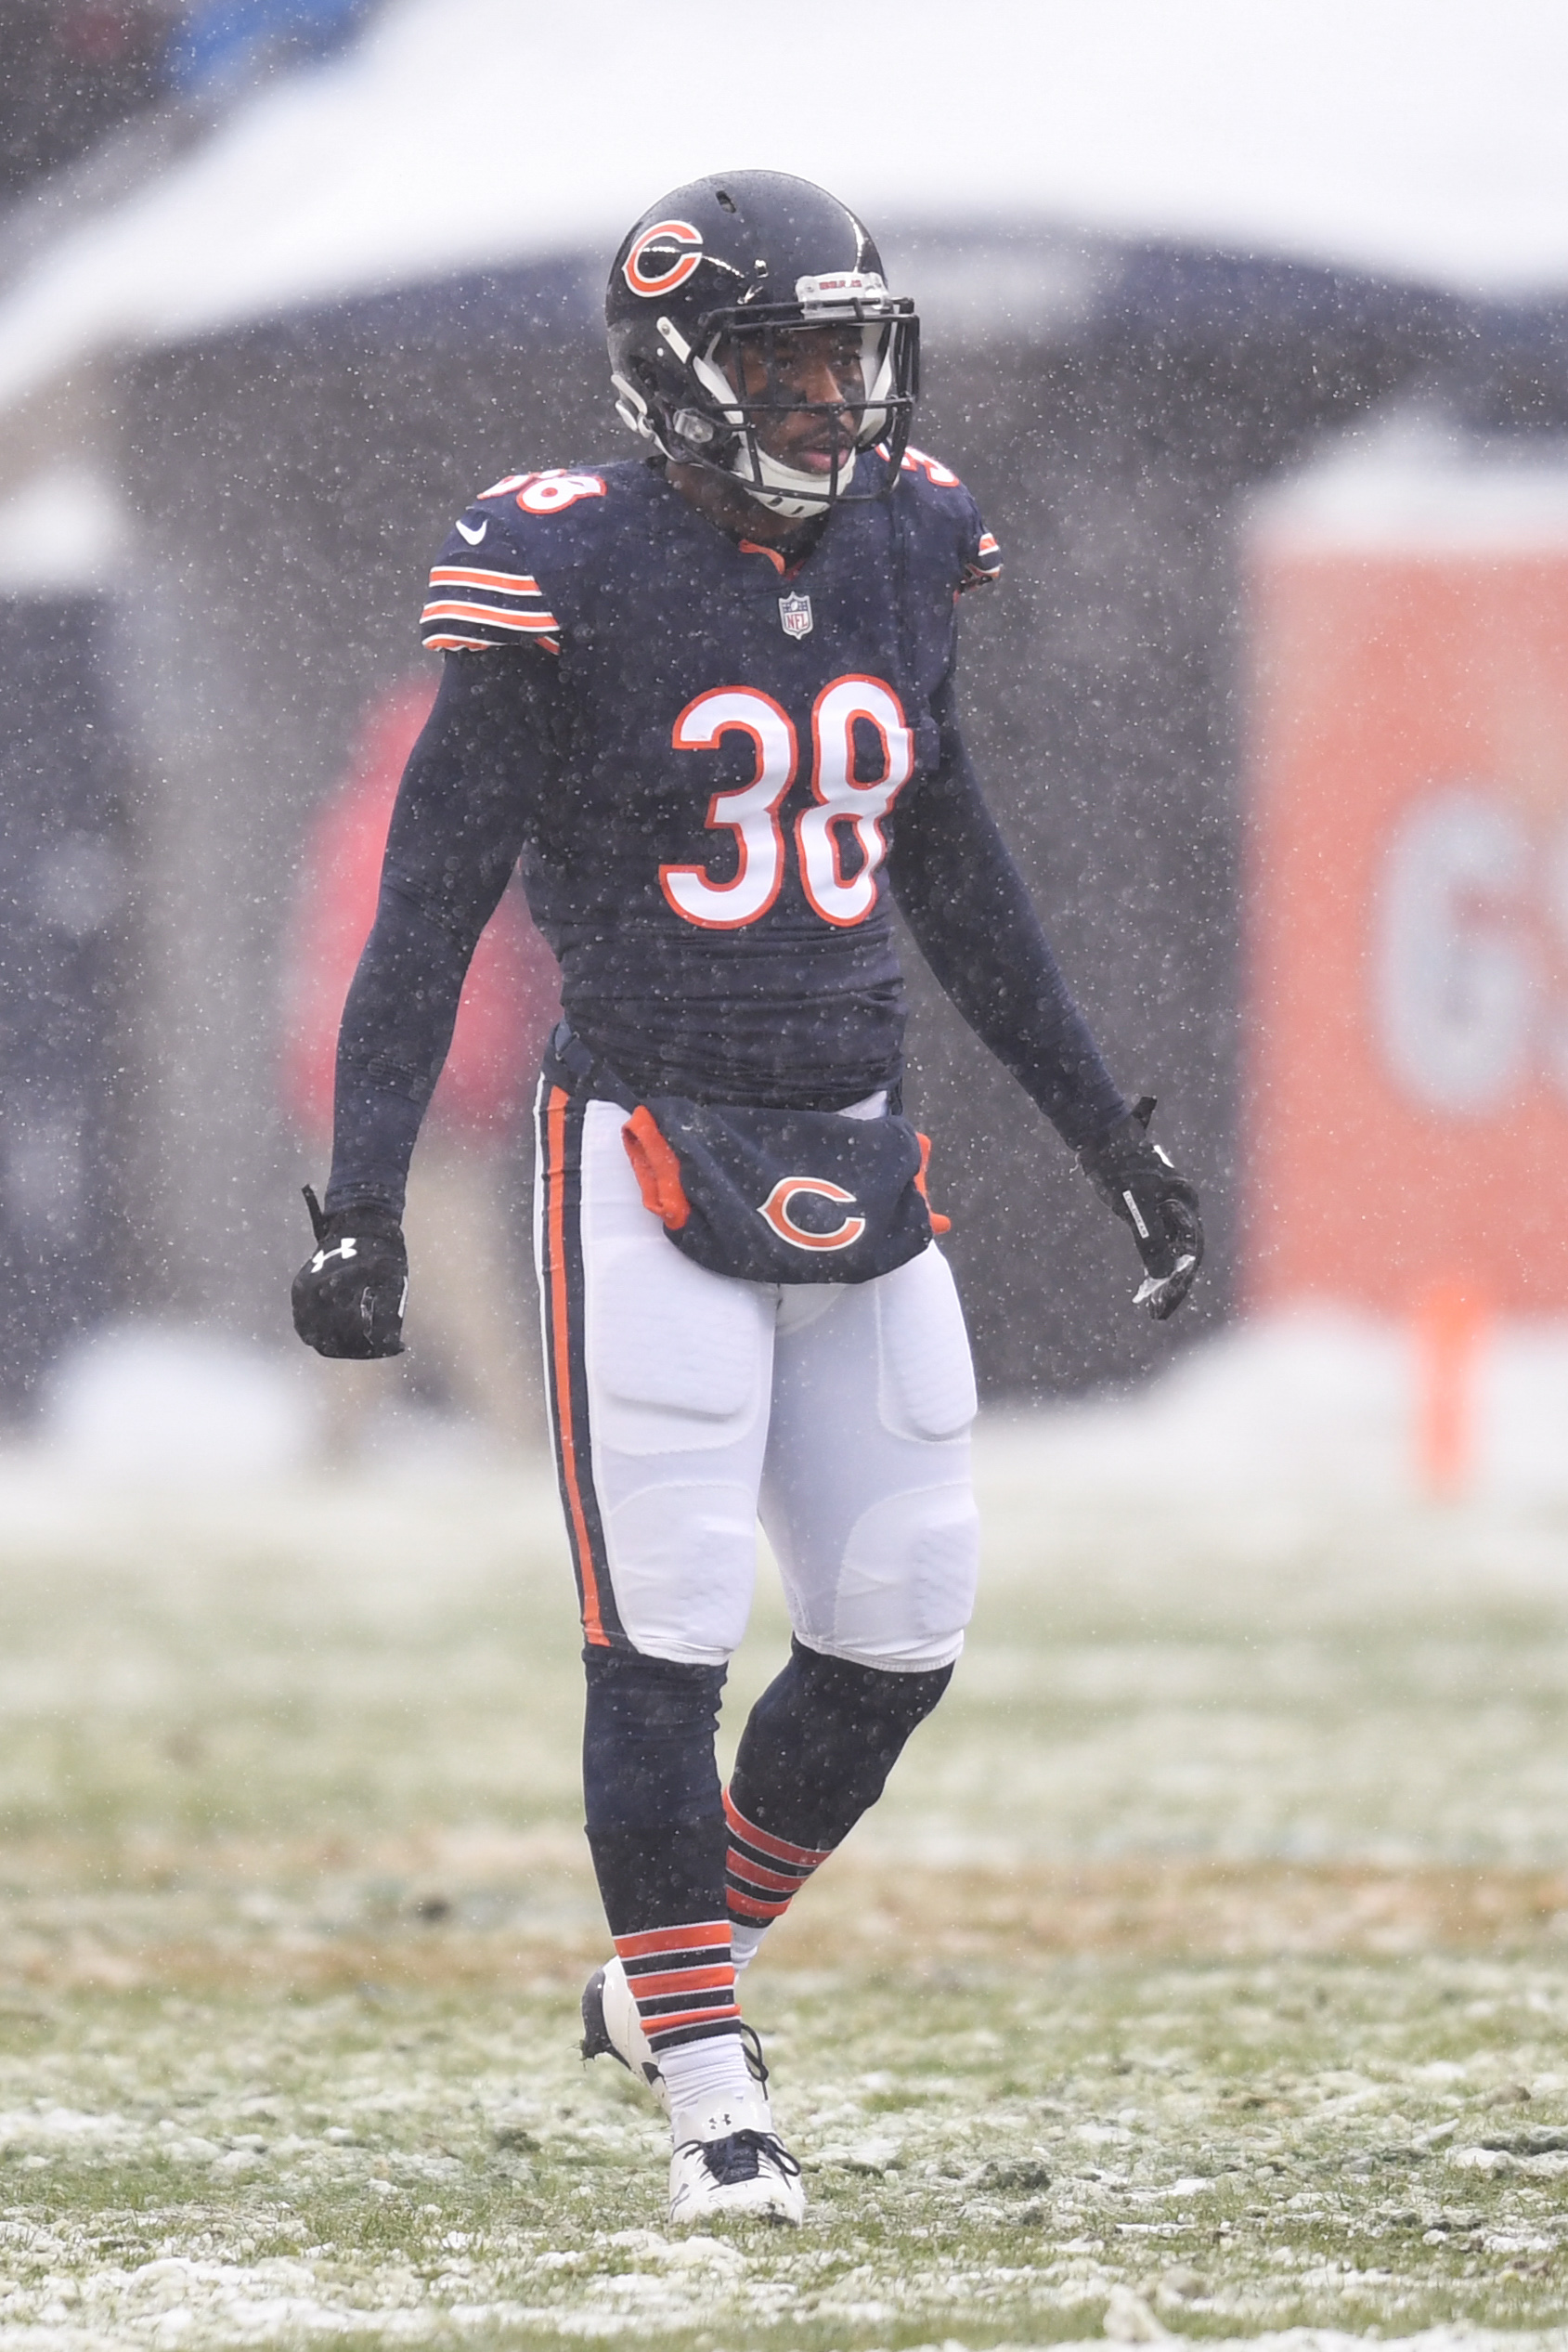 e9bc9c7c380 This year, Adrian Amos profiles as one of the best safeties available in free  agency. Ideally, the Bears would like to keep him from the open market, ...